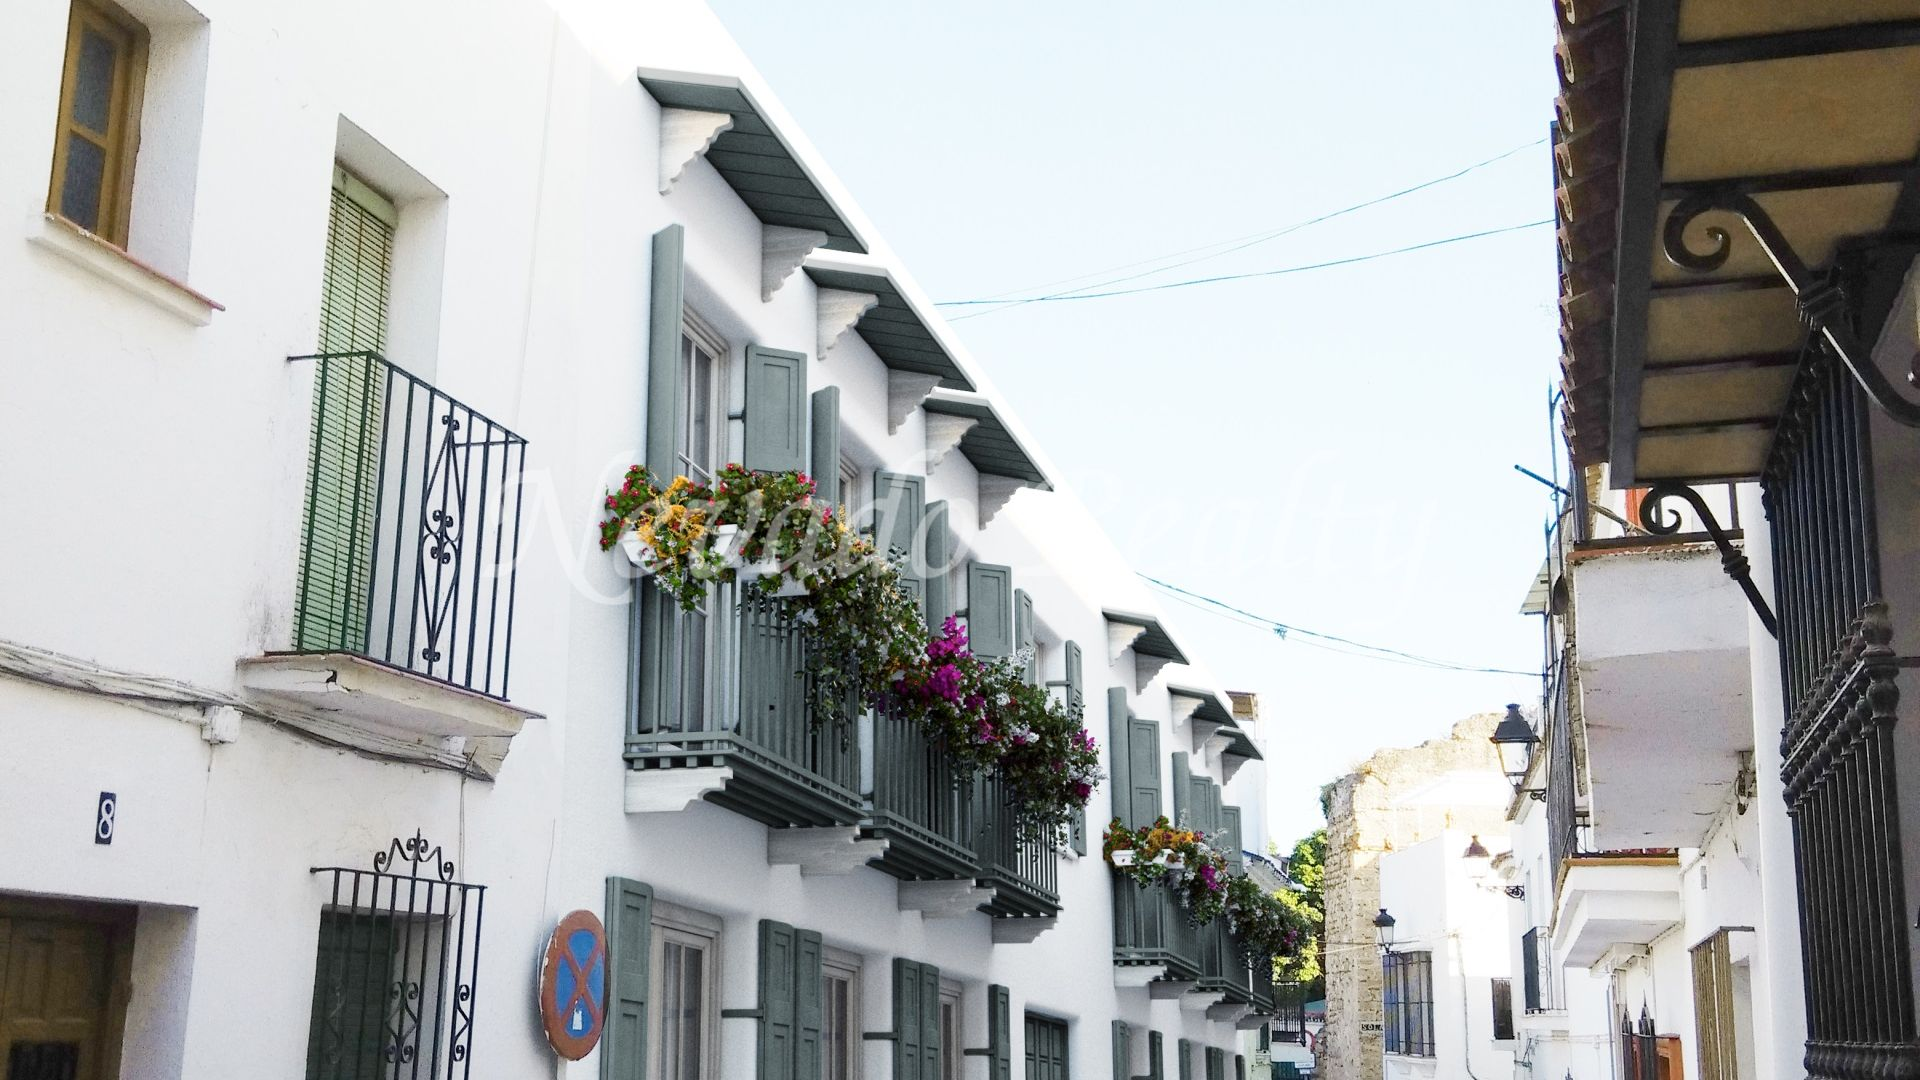 6 unique and special homes in the historic heart of Marbella